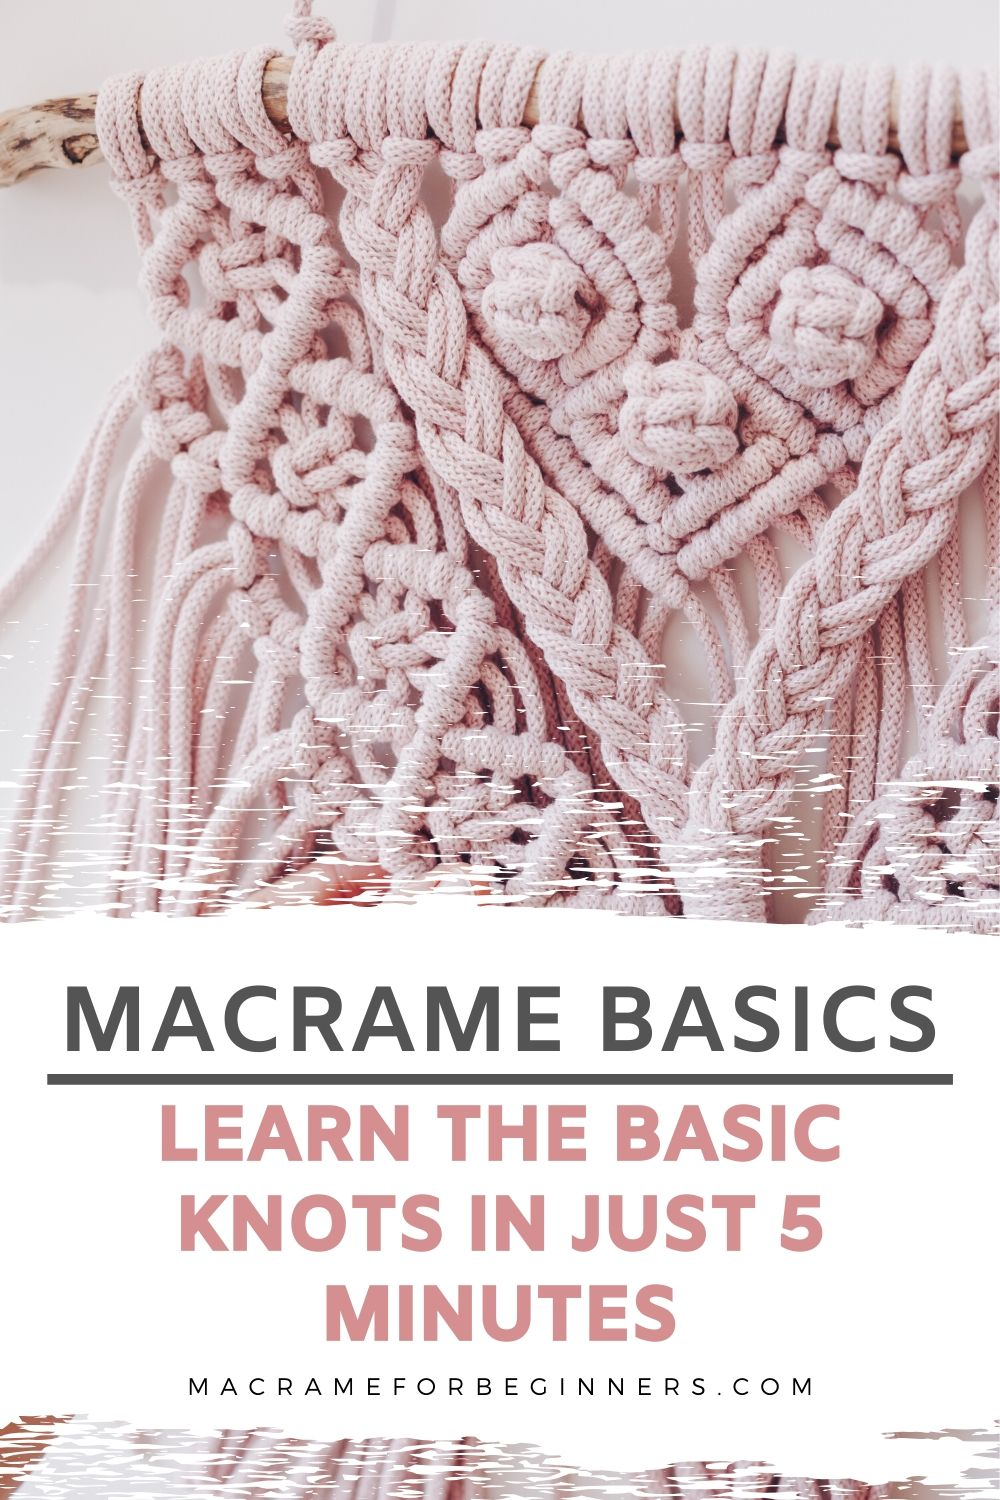 Macrame Basics - Learn The Basic Knots In Just 5 Minutes - Macrame Tutorials for Beginners